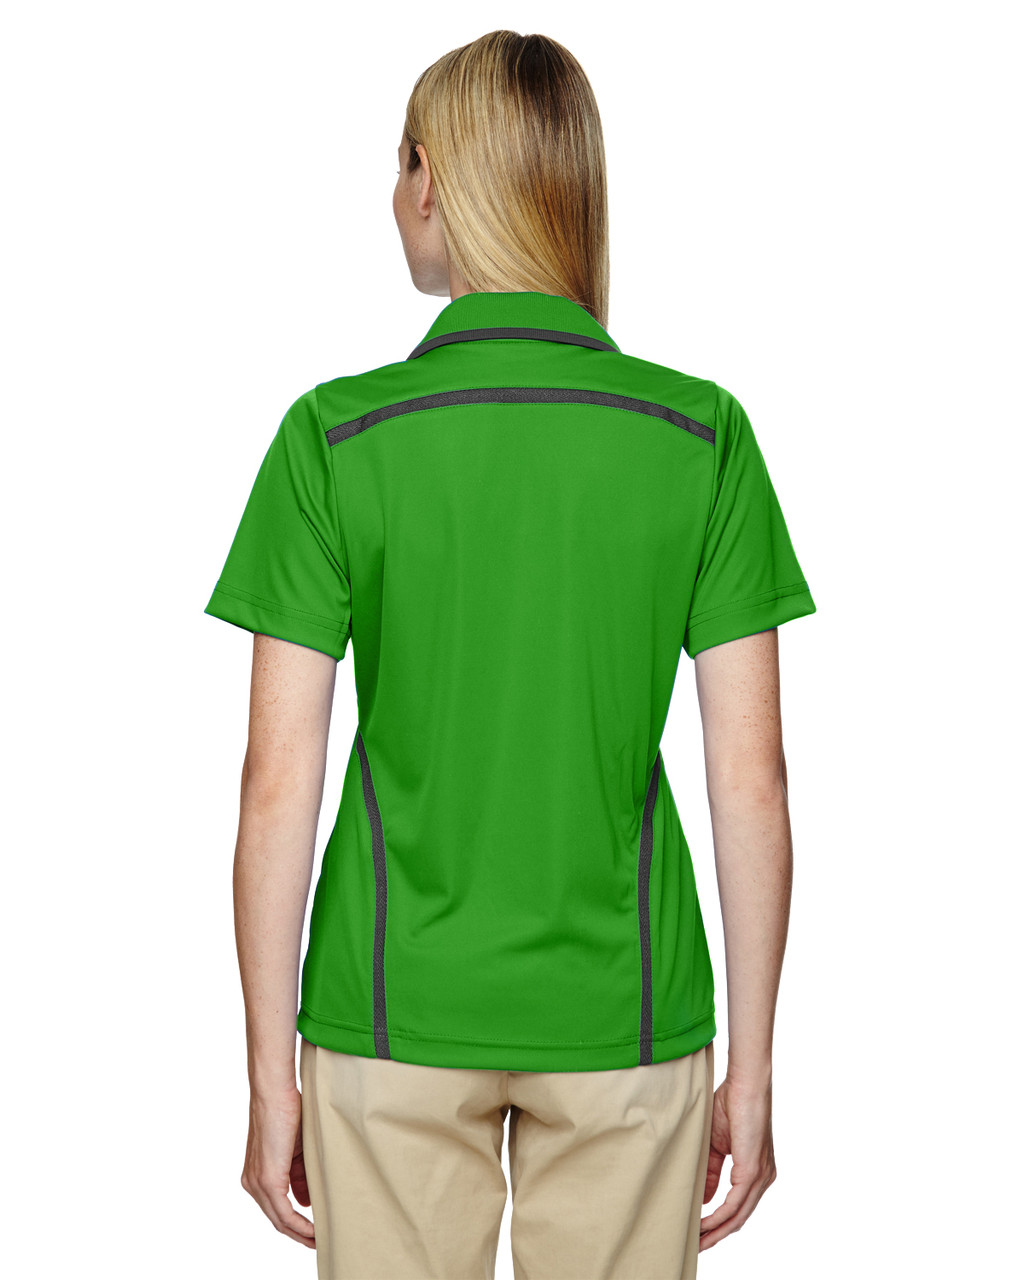 Valley Green - Back, 75118 Ash City - Extreme Eperformance Propel Interlock Polo Shirt with Contrast Tape   BlankClothing.ca